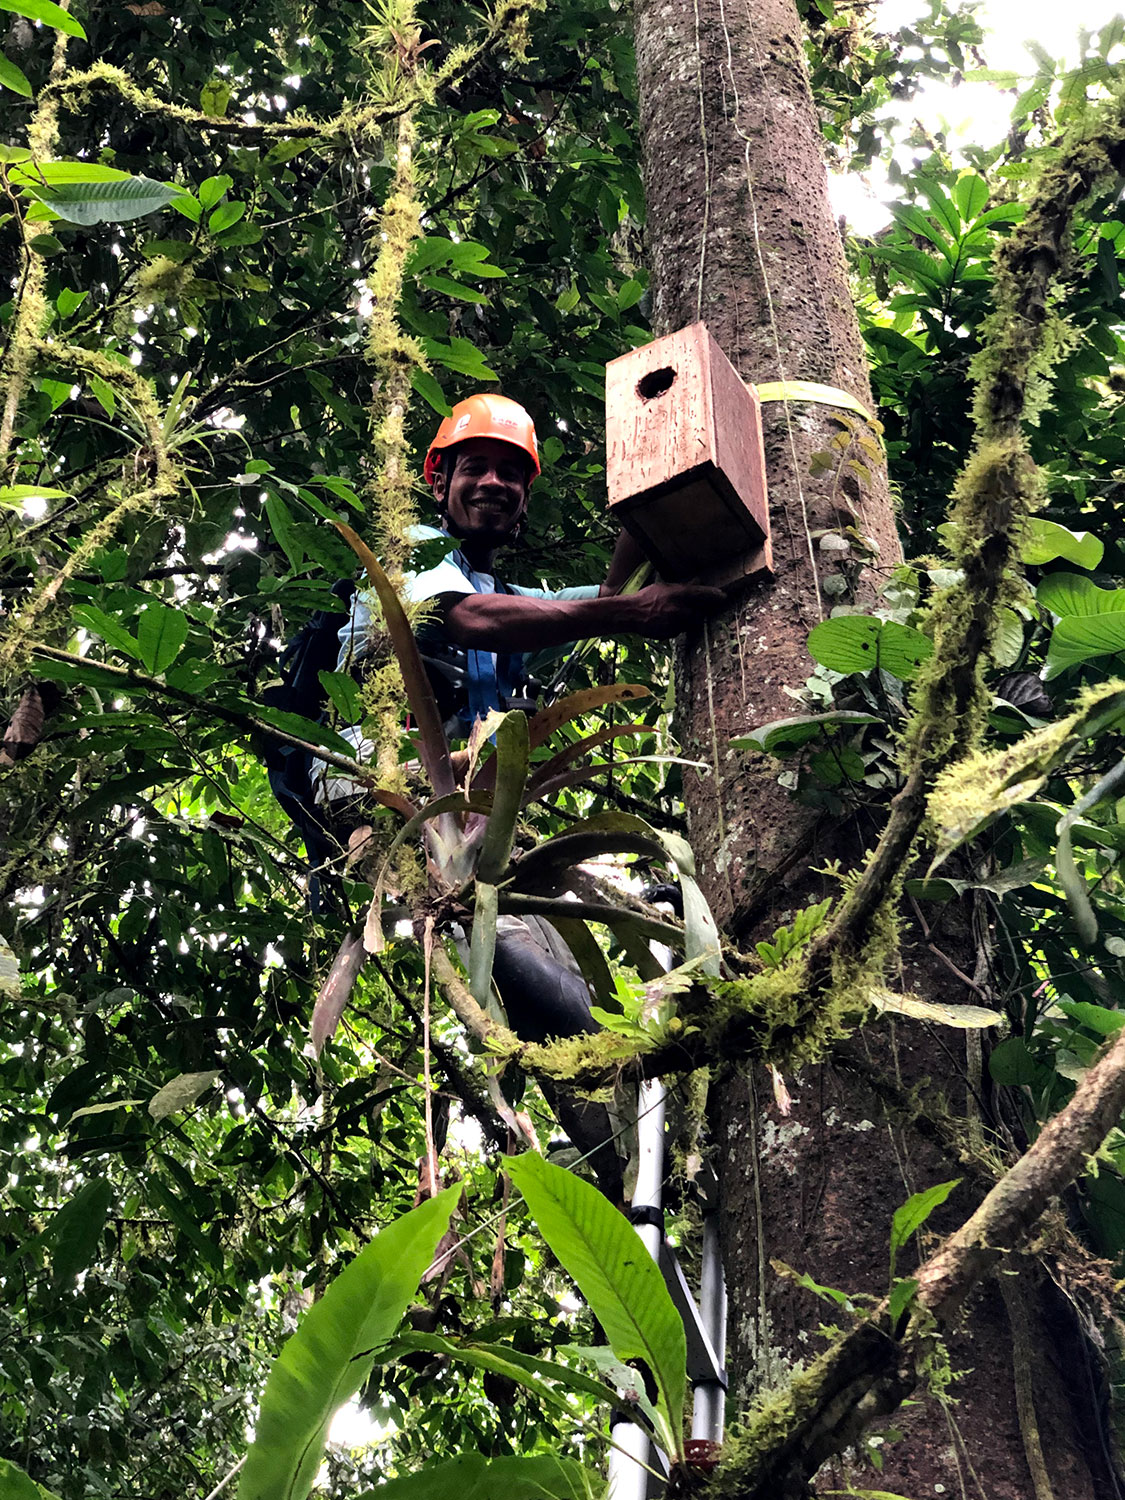 A researcher installing a birdhouse on a tree